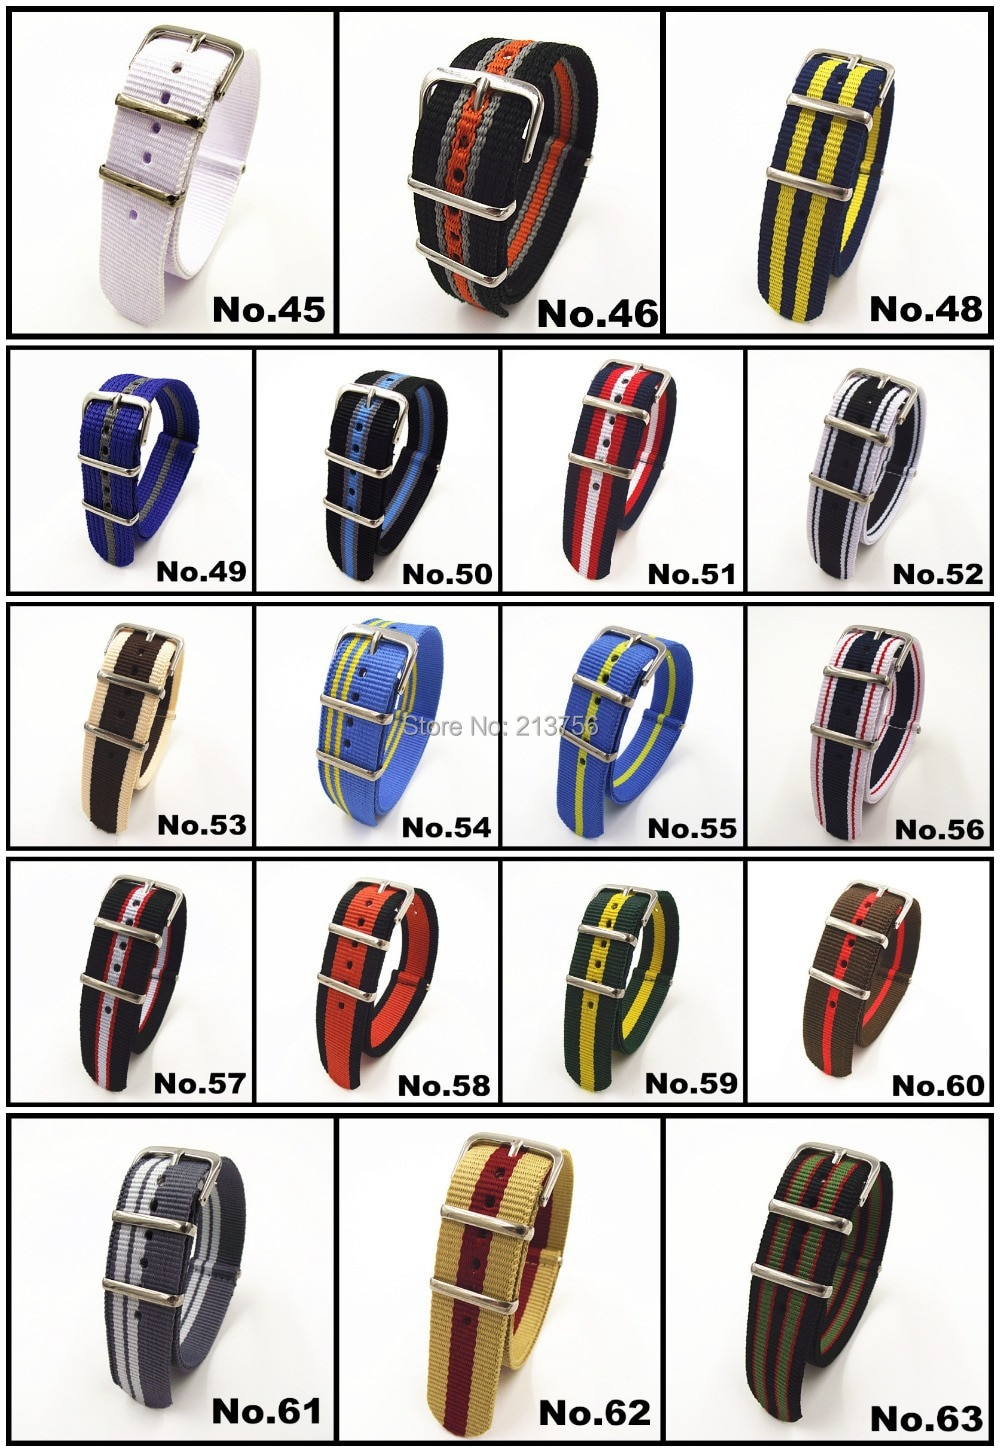 Wholesale 2000PCS/lots High quality 20MM Nylon Watch band NATO waterproof watch strap fashion wach band- 81 color available enlarge